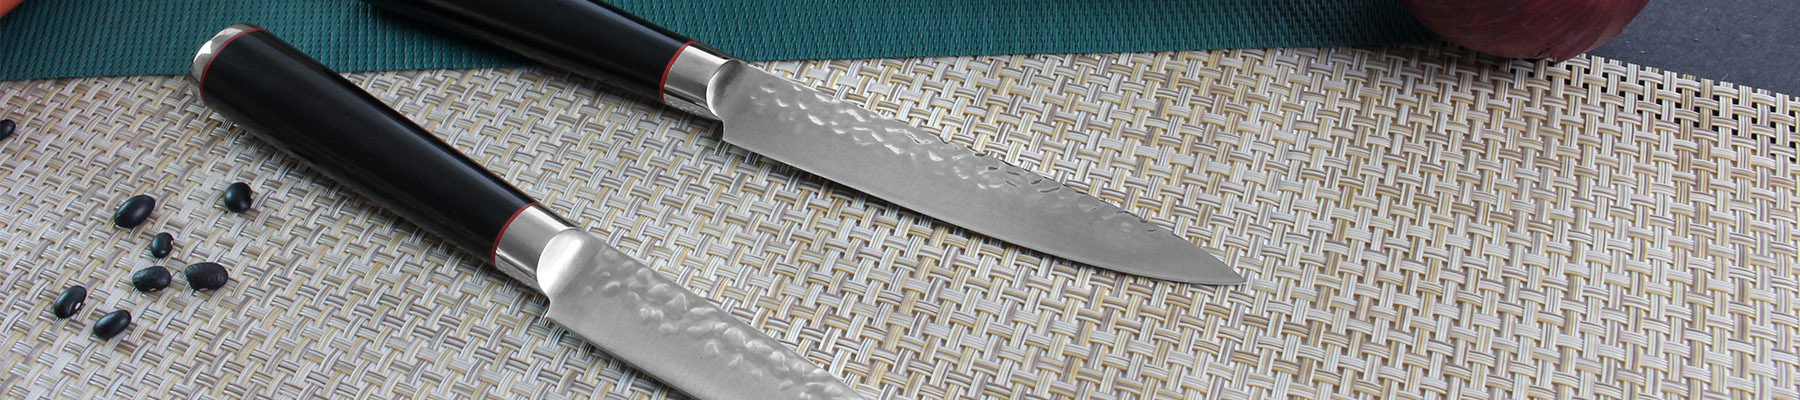 Wusaki Ebony AUS8 Set with roll bag and 5 kitchen knives